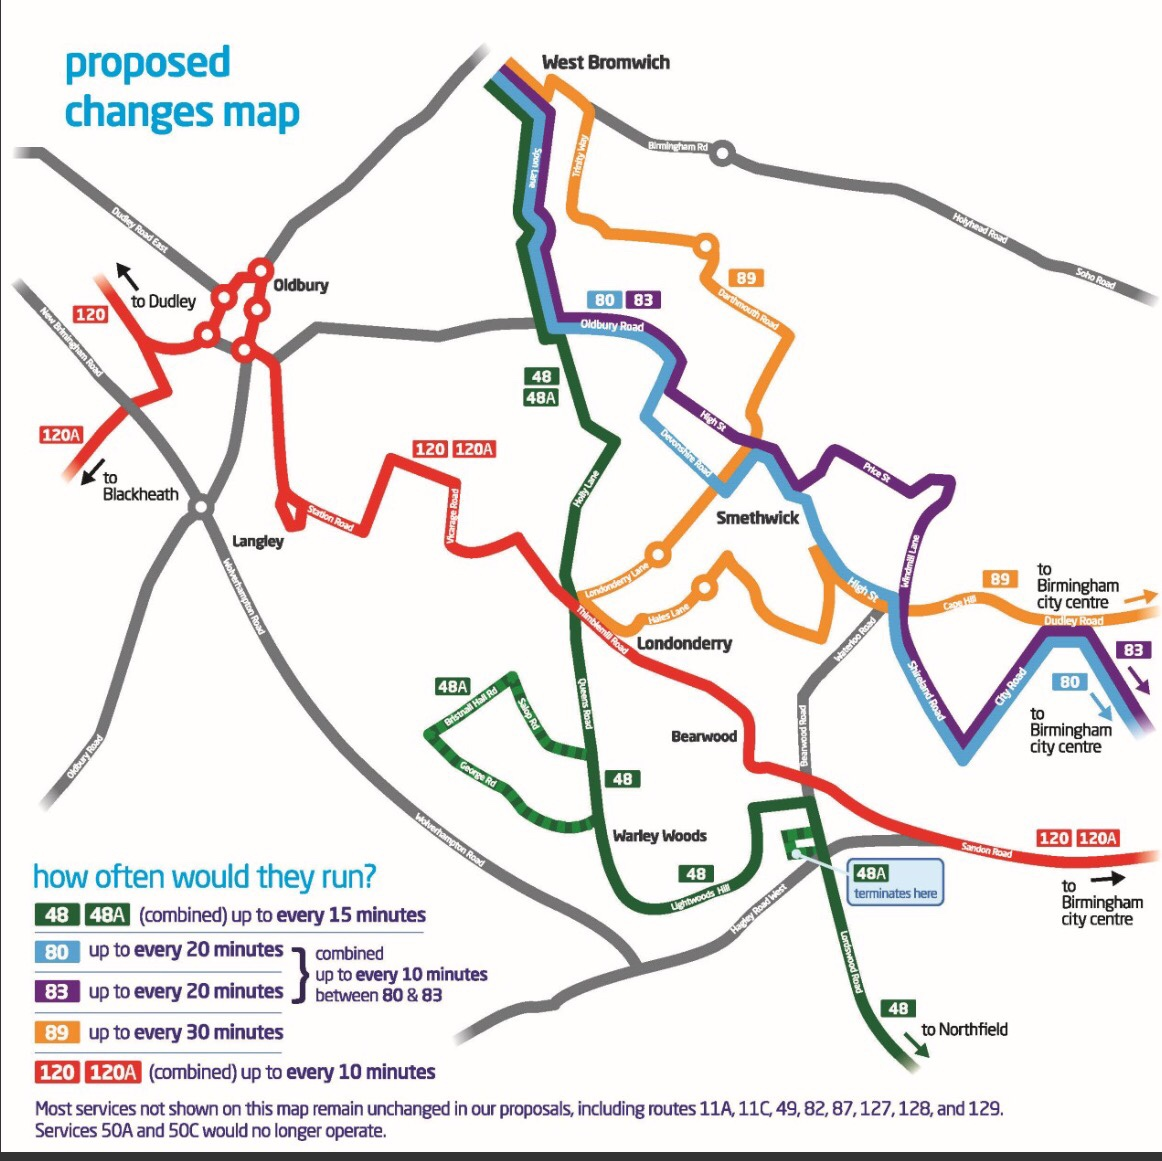 Consultation on changes to bus routes | The Bearwood Blog